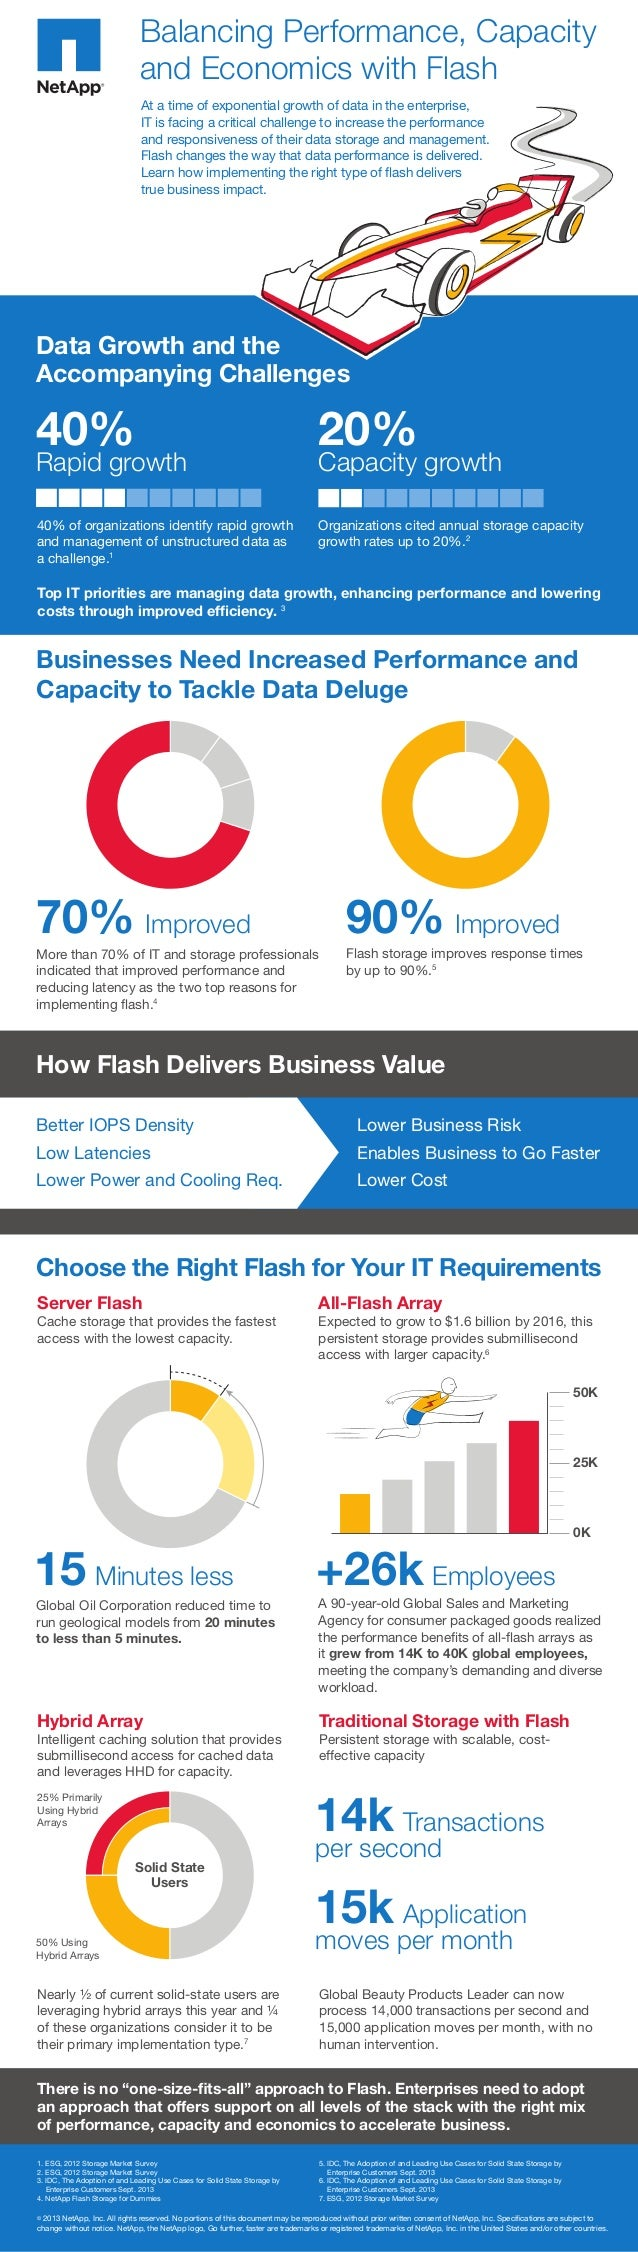 Balancing Performance, Capacity and Economics with Flash At a time of exponential growth of data in the enterprise, IT is ...